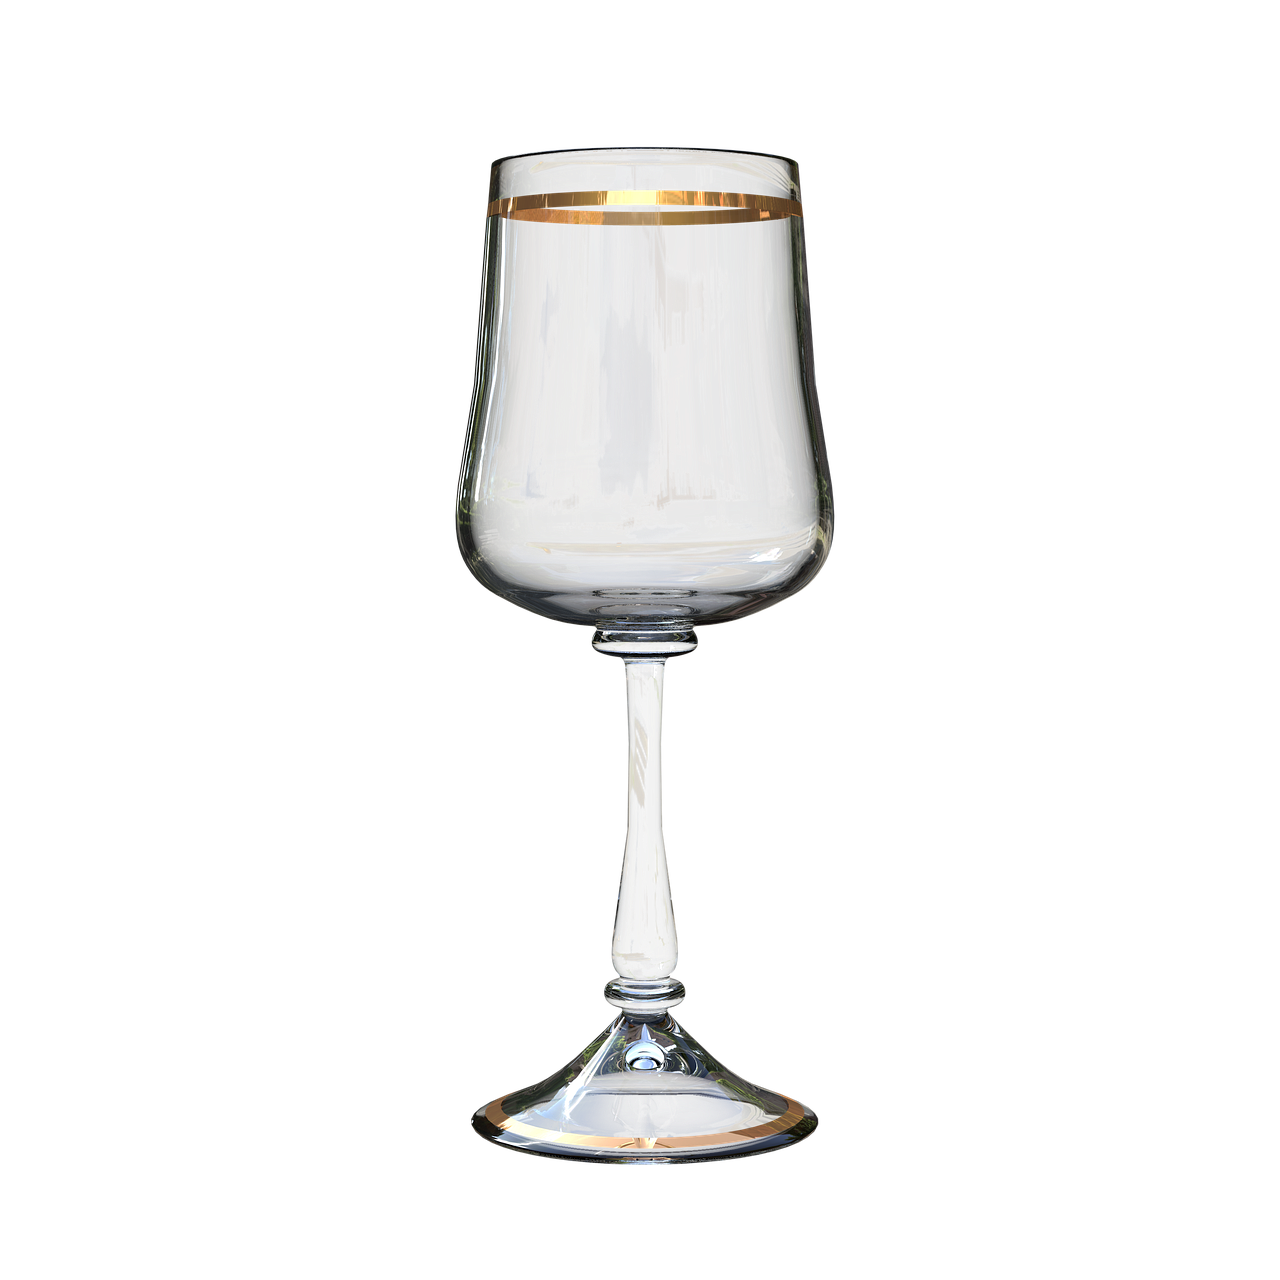 glass wine glass,transparent,empty glass,free pictures, free photos, free images, royalty free, free illustrations, public domain